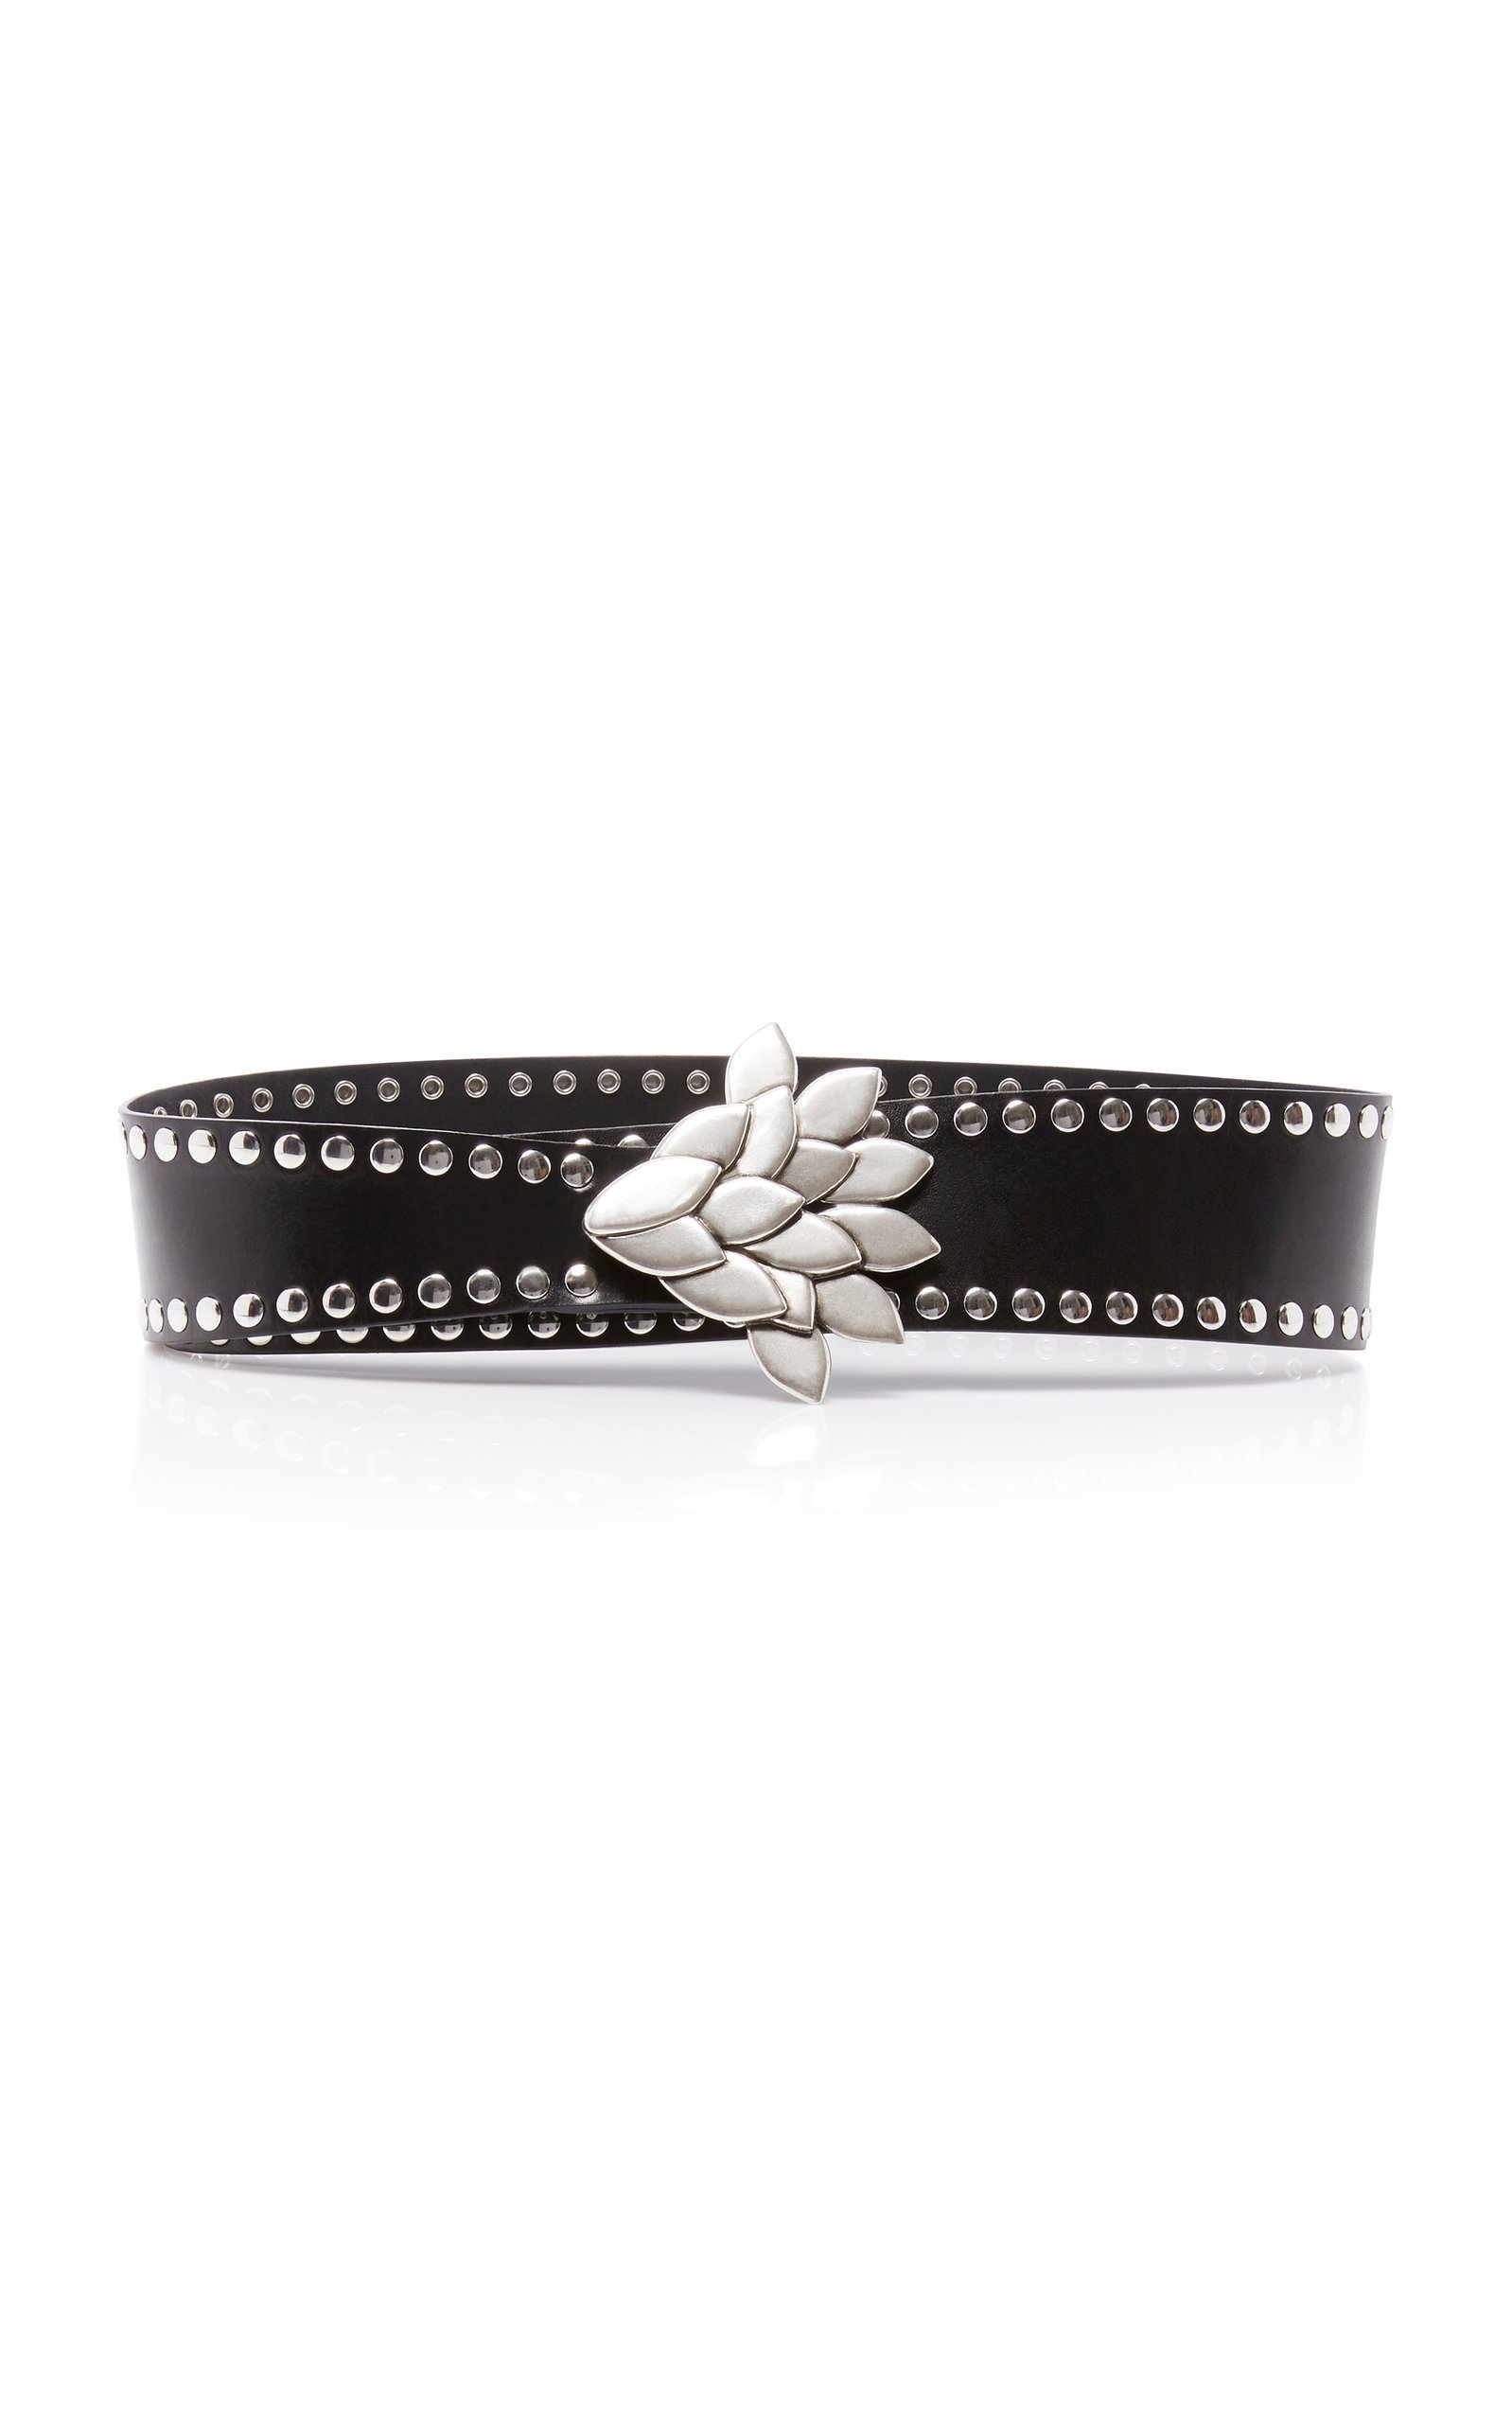 Isabel Marant Lowi Studded Leather Belt Size: S